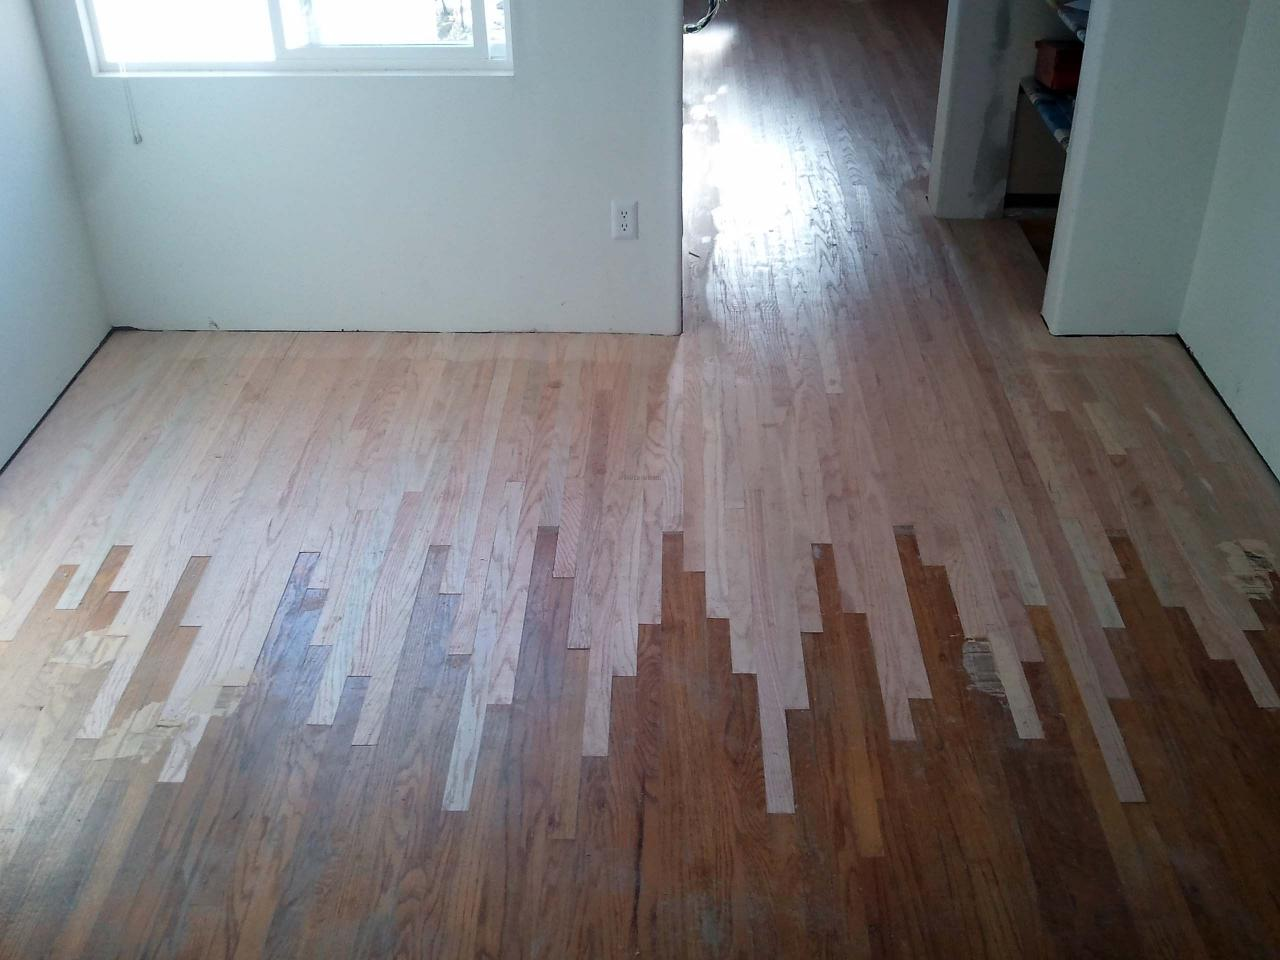 San diego hardwood flooring wood floors for Bleach on concrete floor